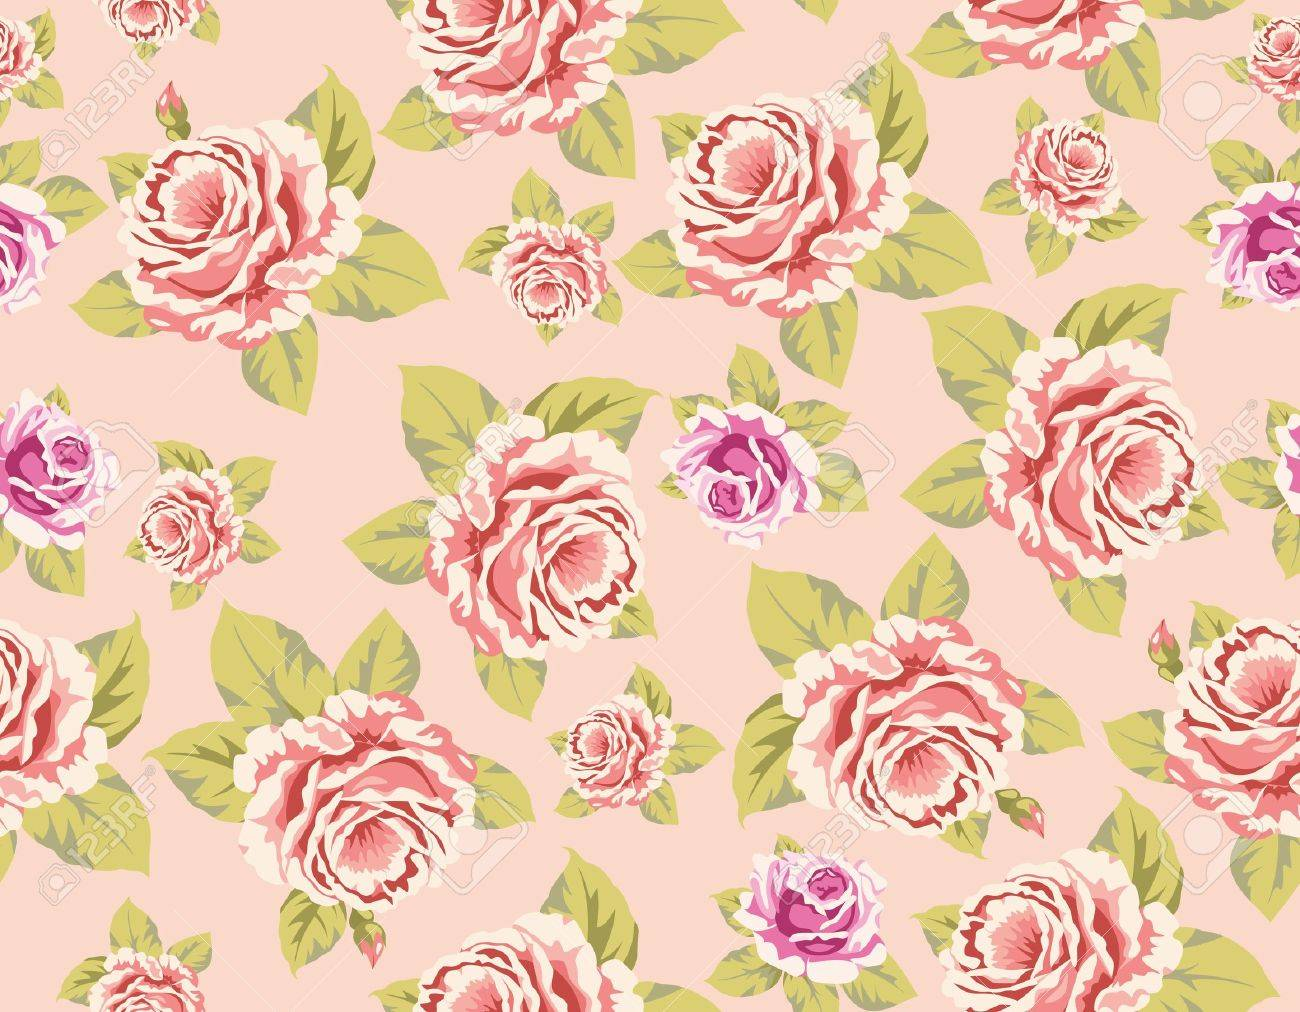 Seamless Wallpaper Pattern With Of Pink Roses On Yellow Background Vector Illustration Stock